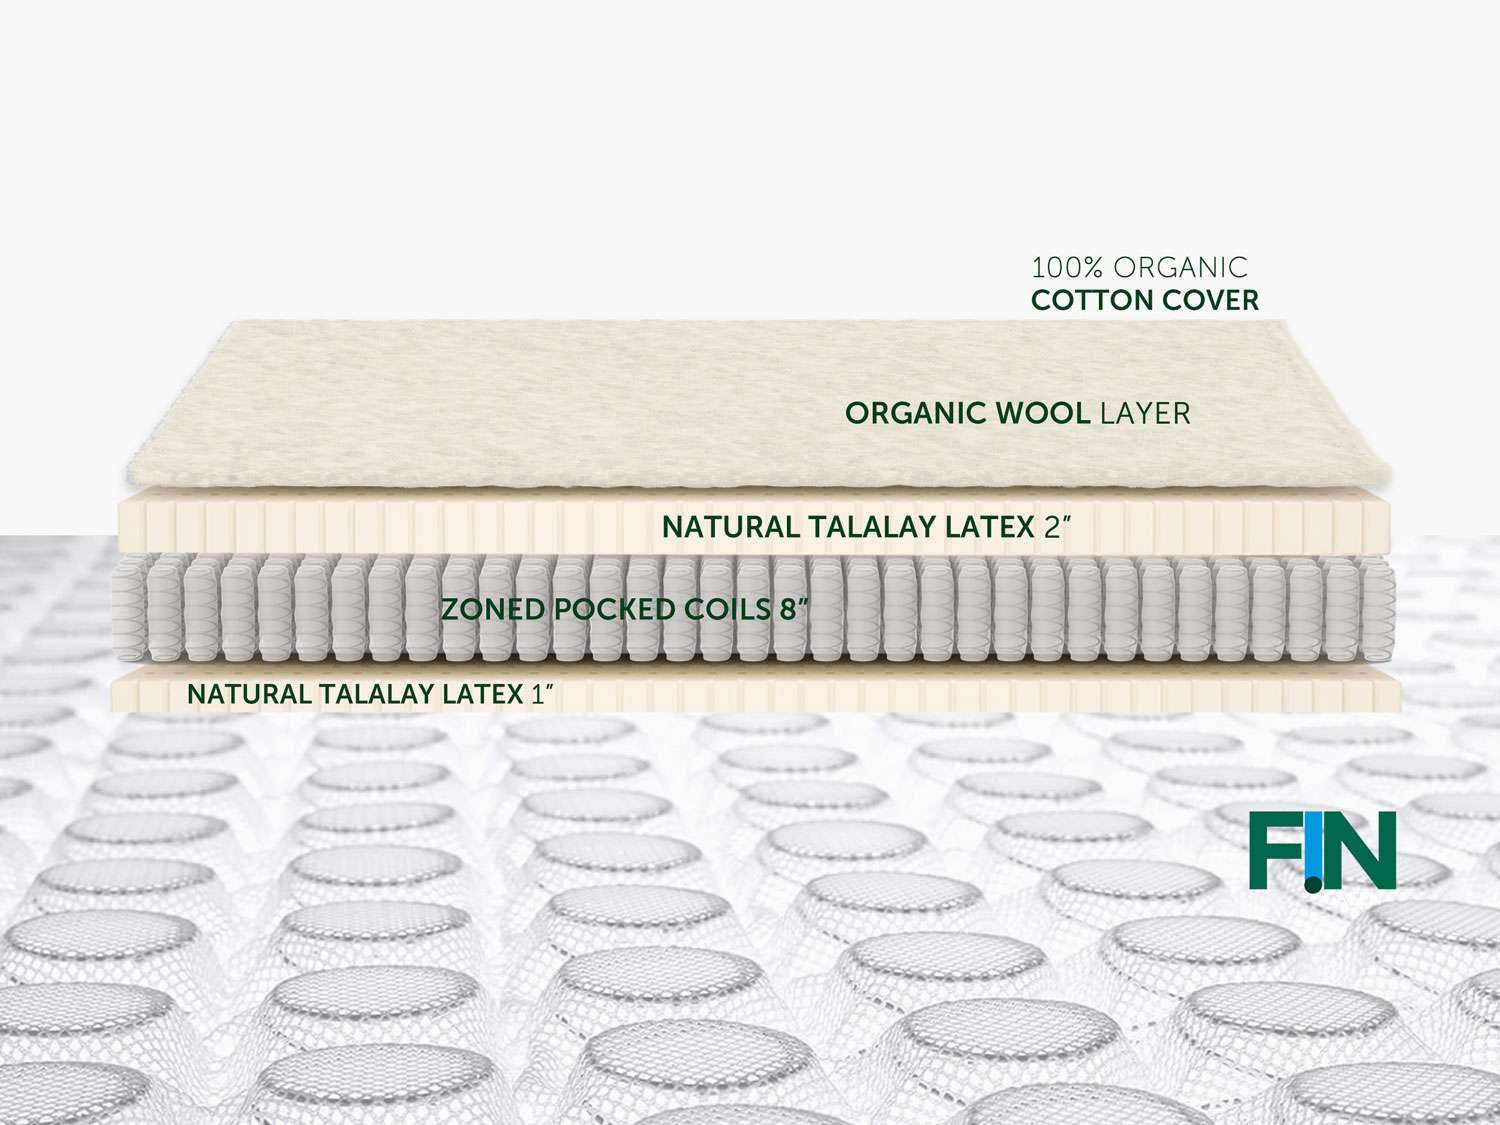 The natural layered design of the FIN Green Mattress broken out - showing its' hybrid construction of organic and natural non-toxic materials